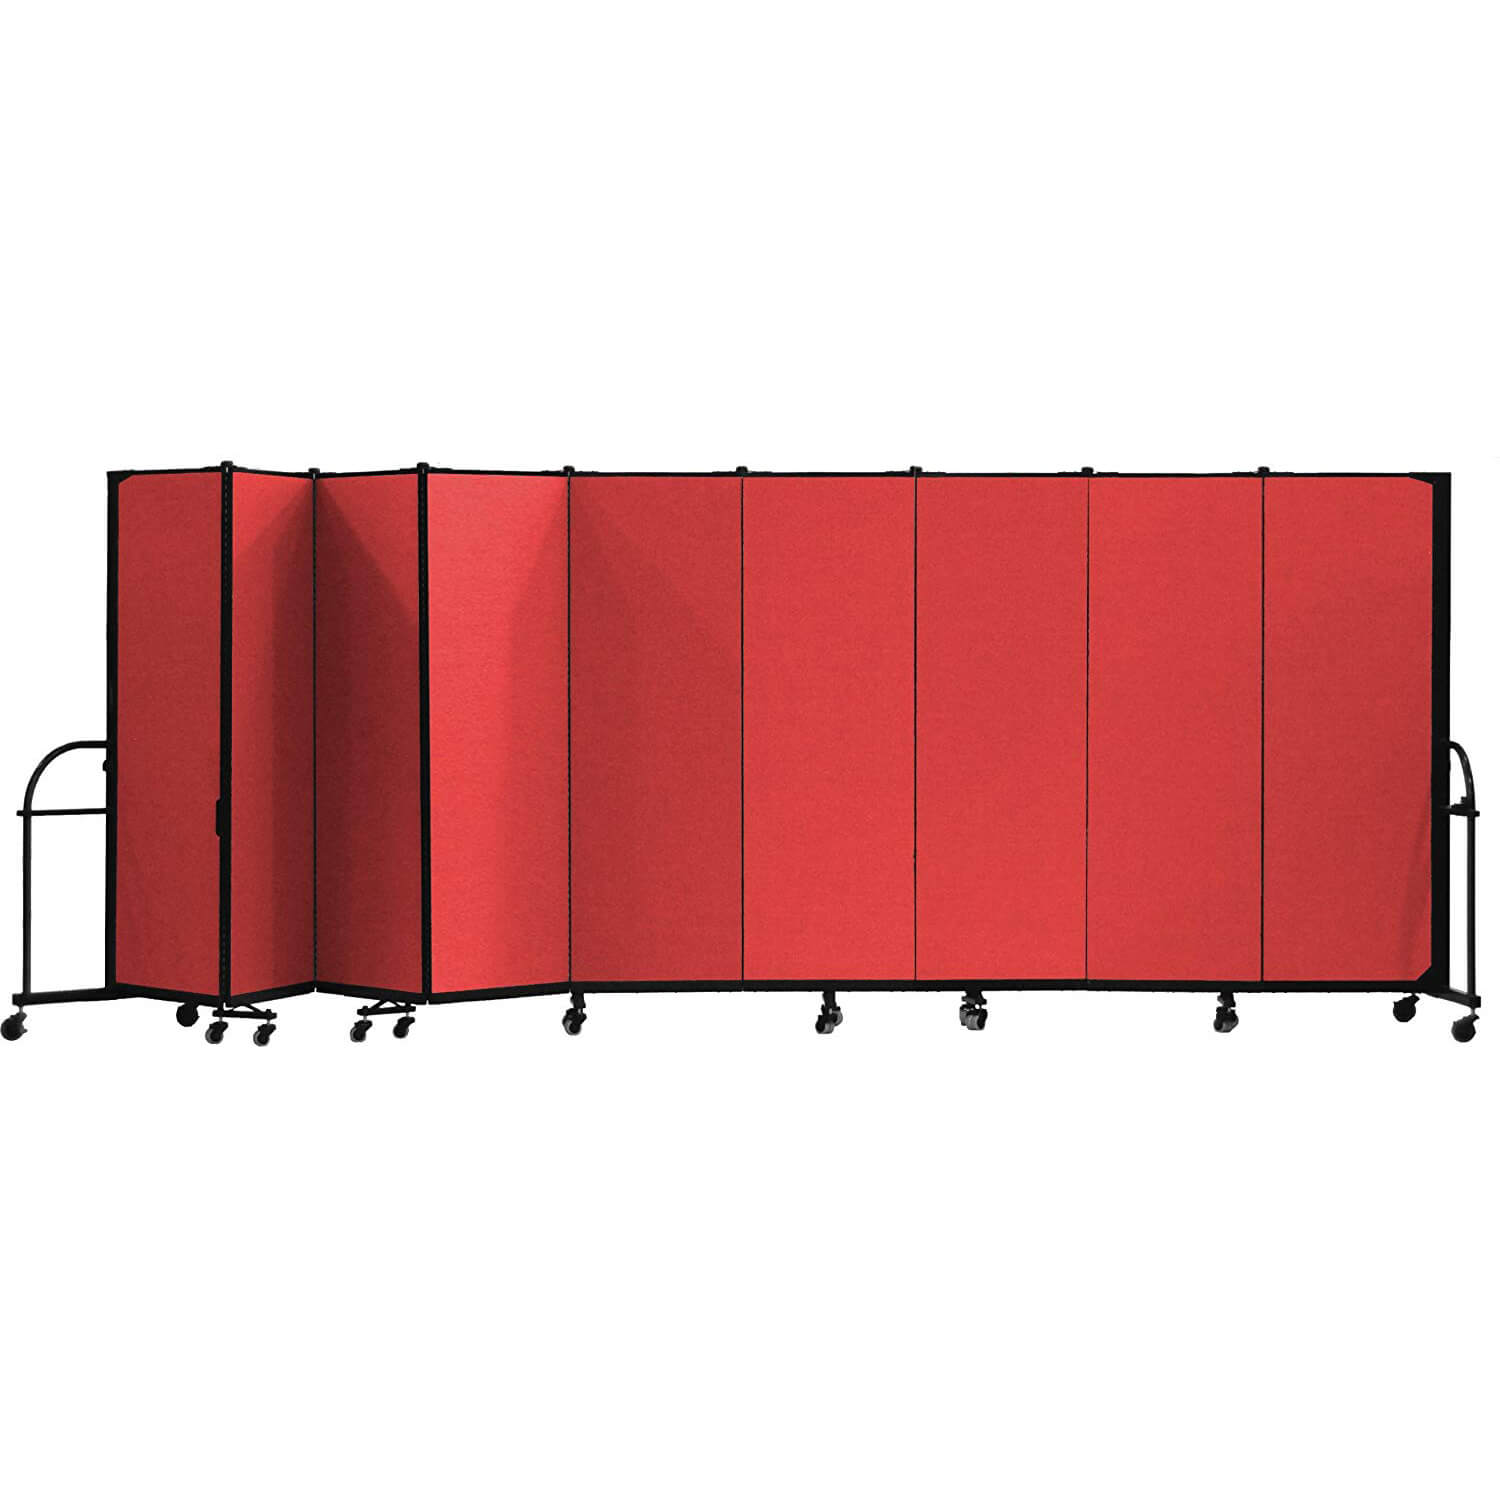 Panel room dividers CUB QSCFSL609DR RCS